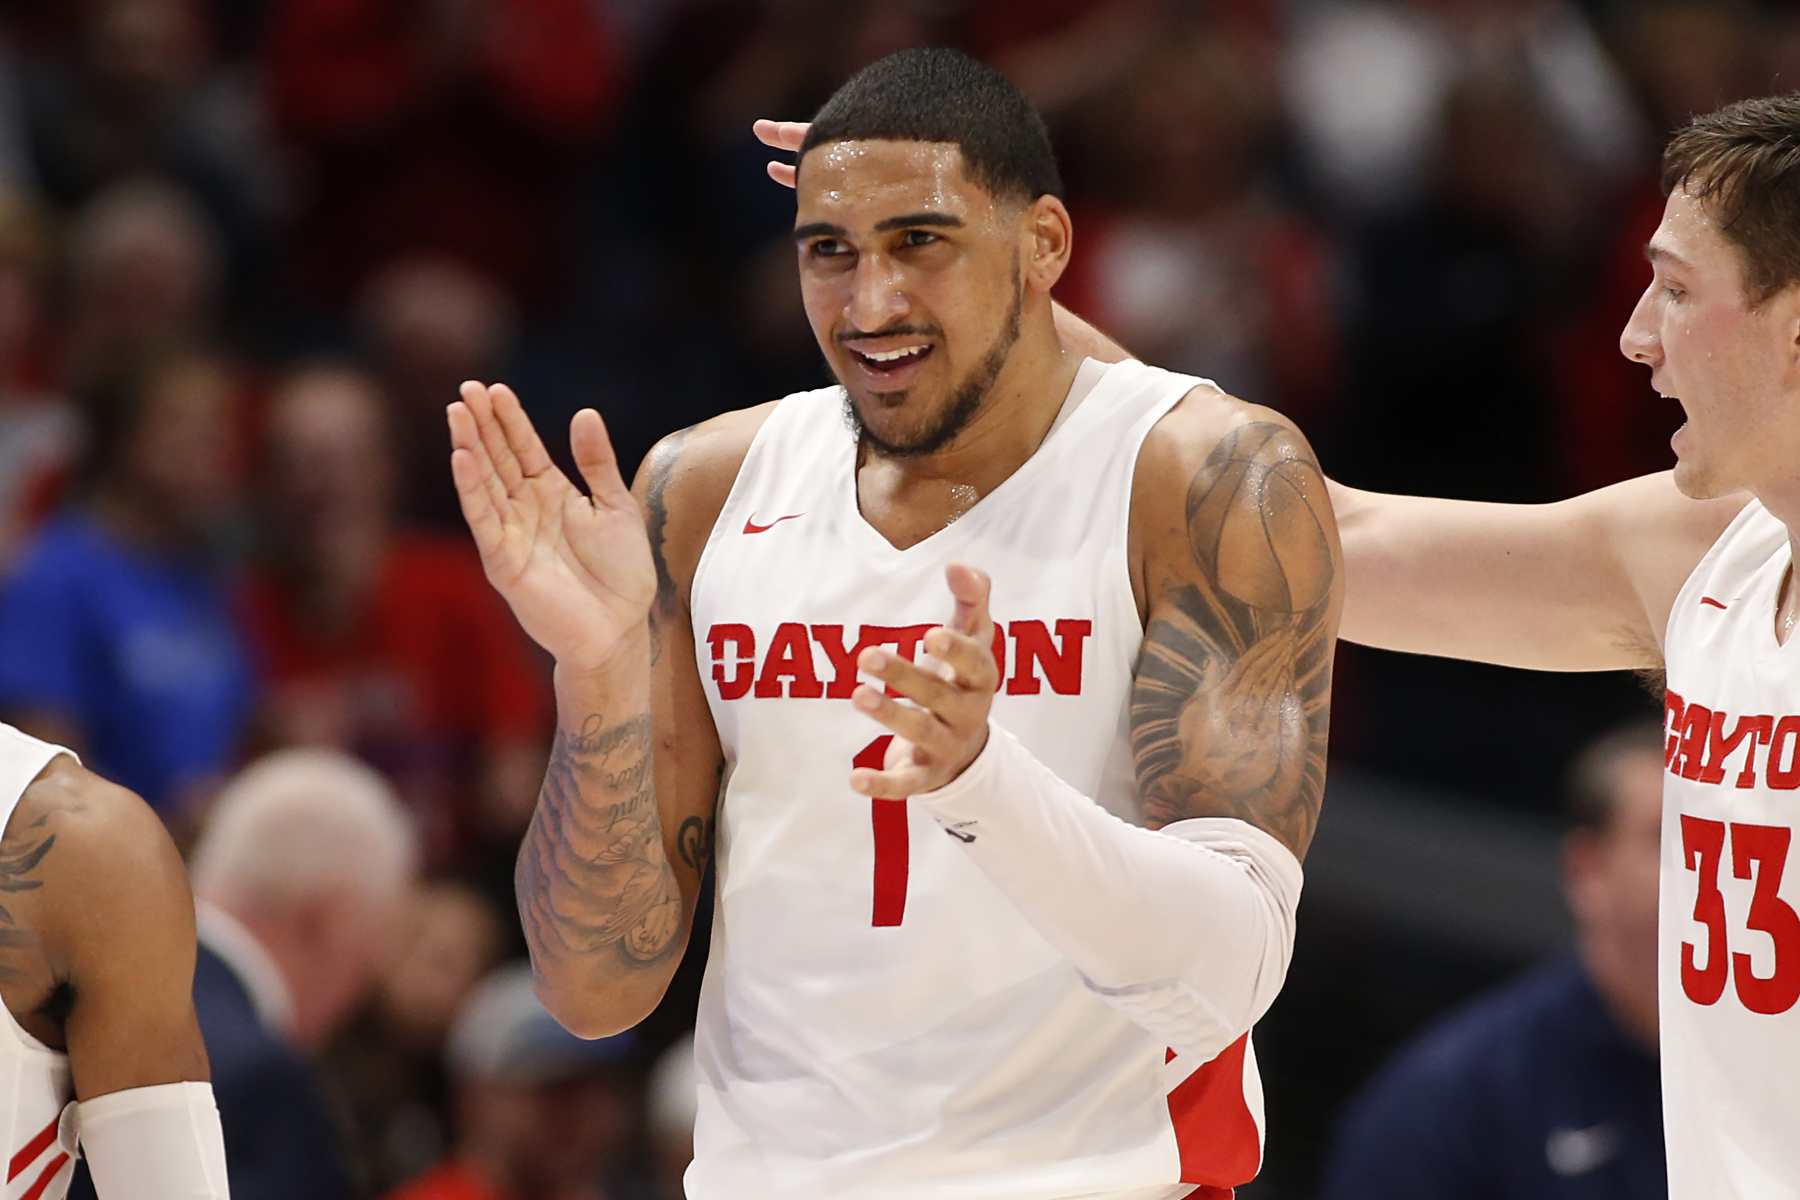 Obi Toppin was a star for the Dayton Flyers. Now, he can become the next LeBron James if the Cleveland Cavaliers select him in the NBA draft.